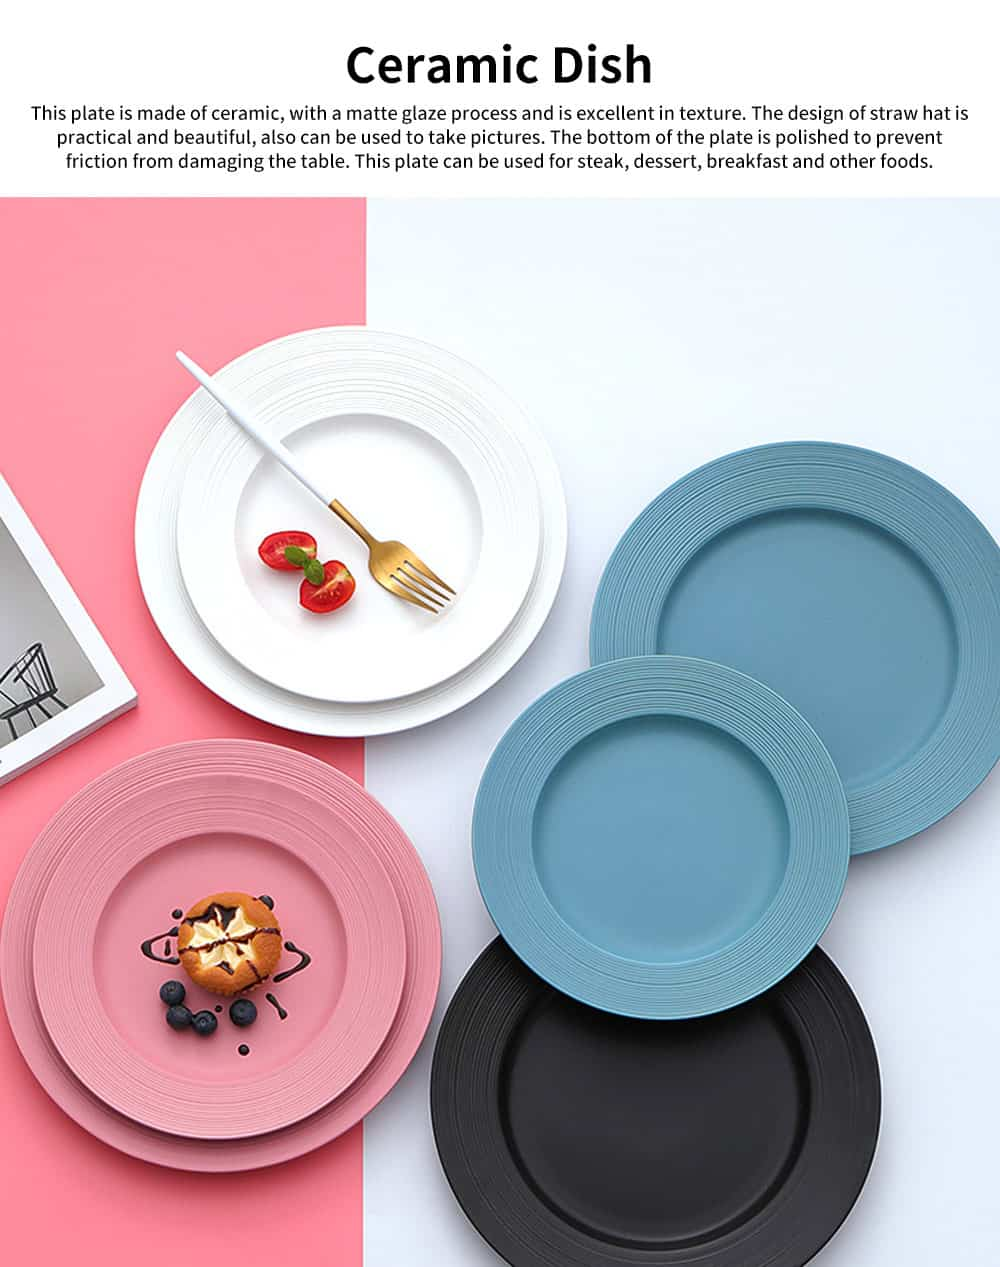 Northern Europe Style Creative Ceramic Dish Plate, Dessert Vegetable Steak Breakfast Round Dish for Household 1